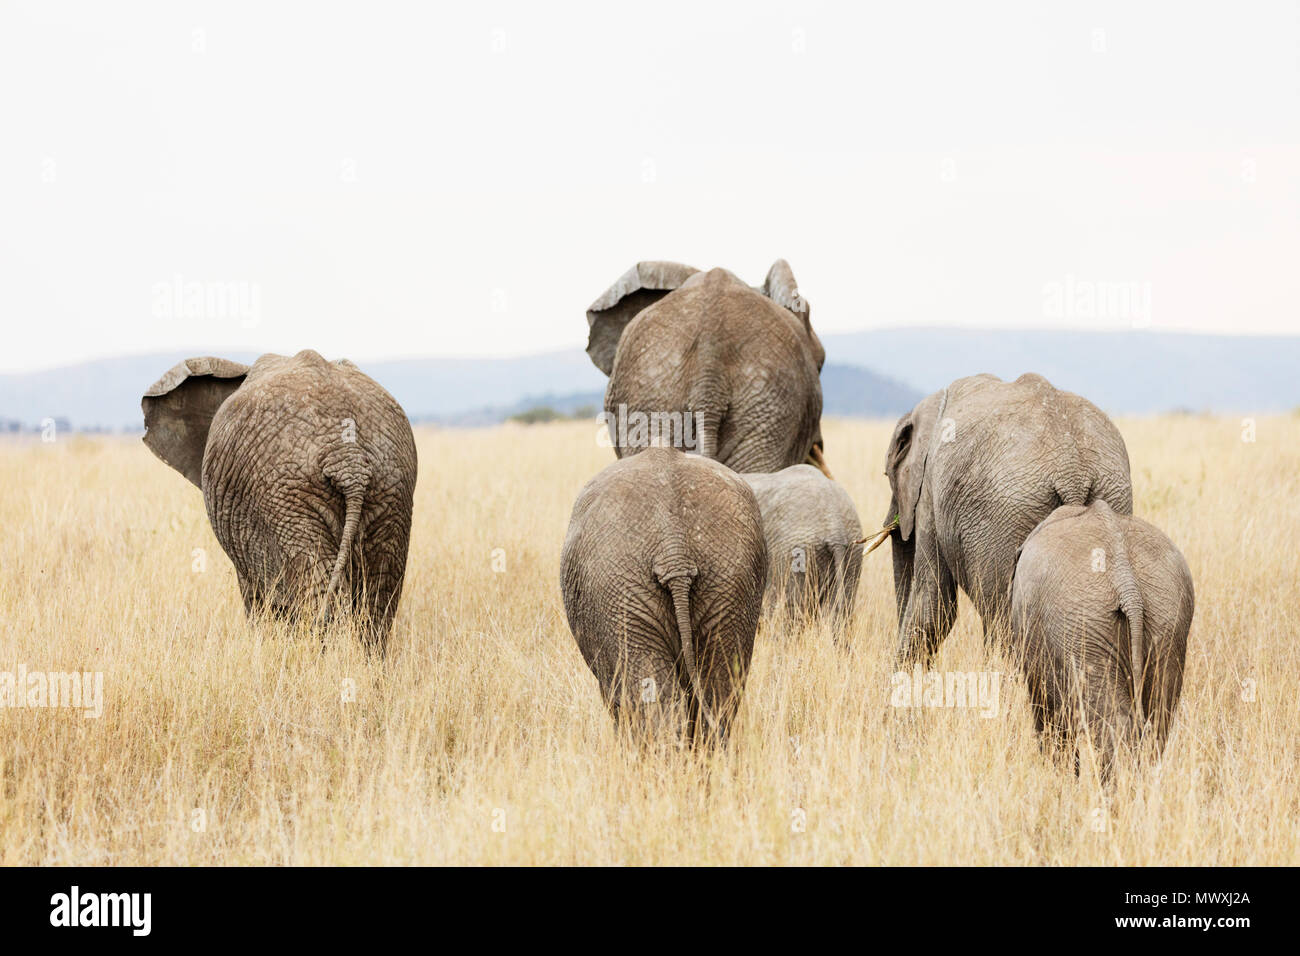 Family of African elephant (Loxodonta africana), Serengeti National Park, UNESCO World Heritage Site, Tanzania, East Africa, Africa - Stock Image